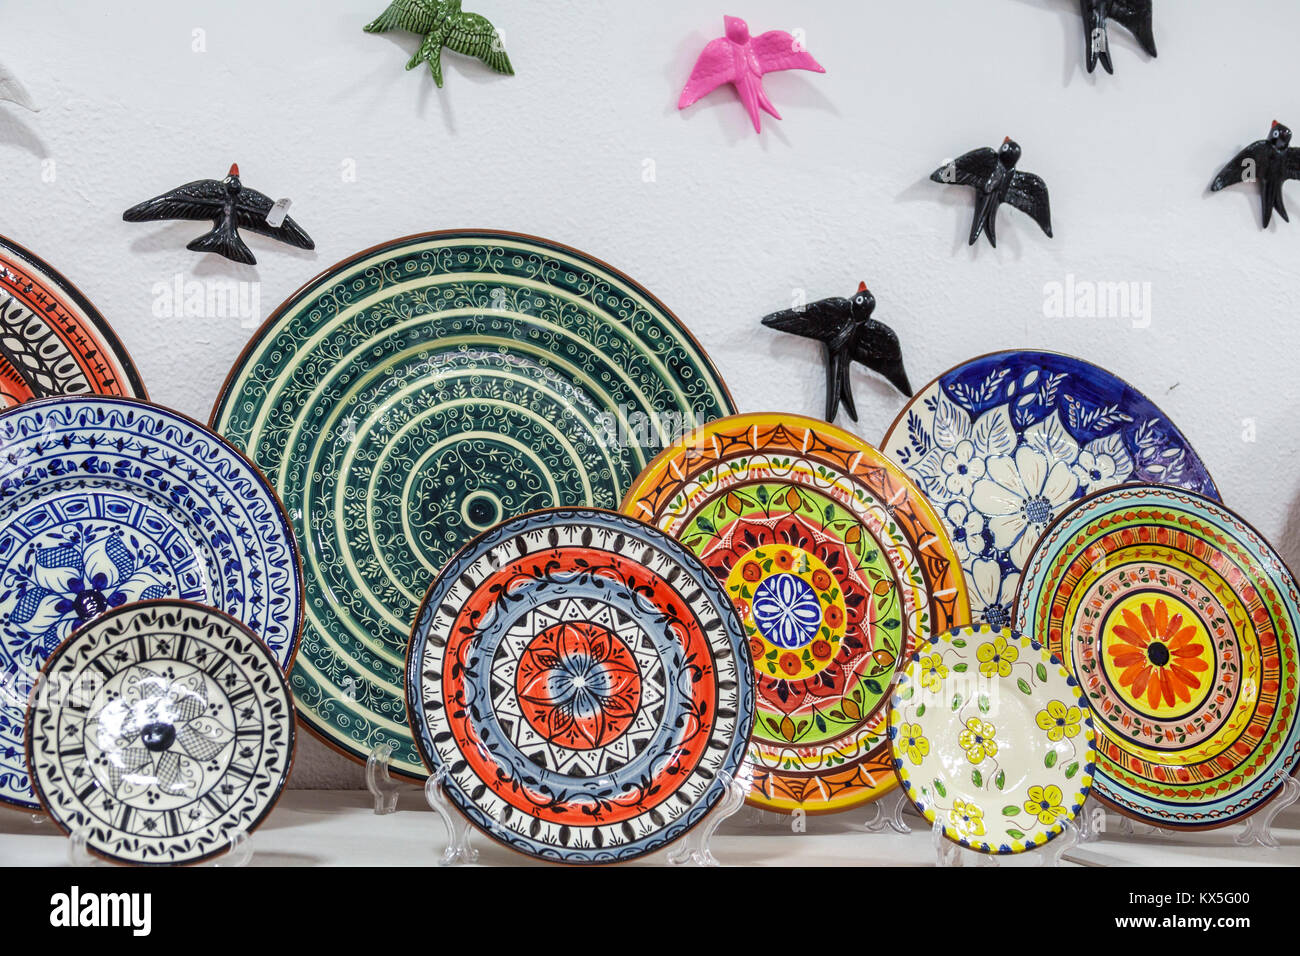 Portuguese Ceramics Stock Photos Amp Portuguese Ceramics